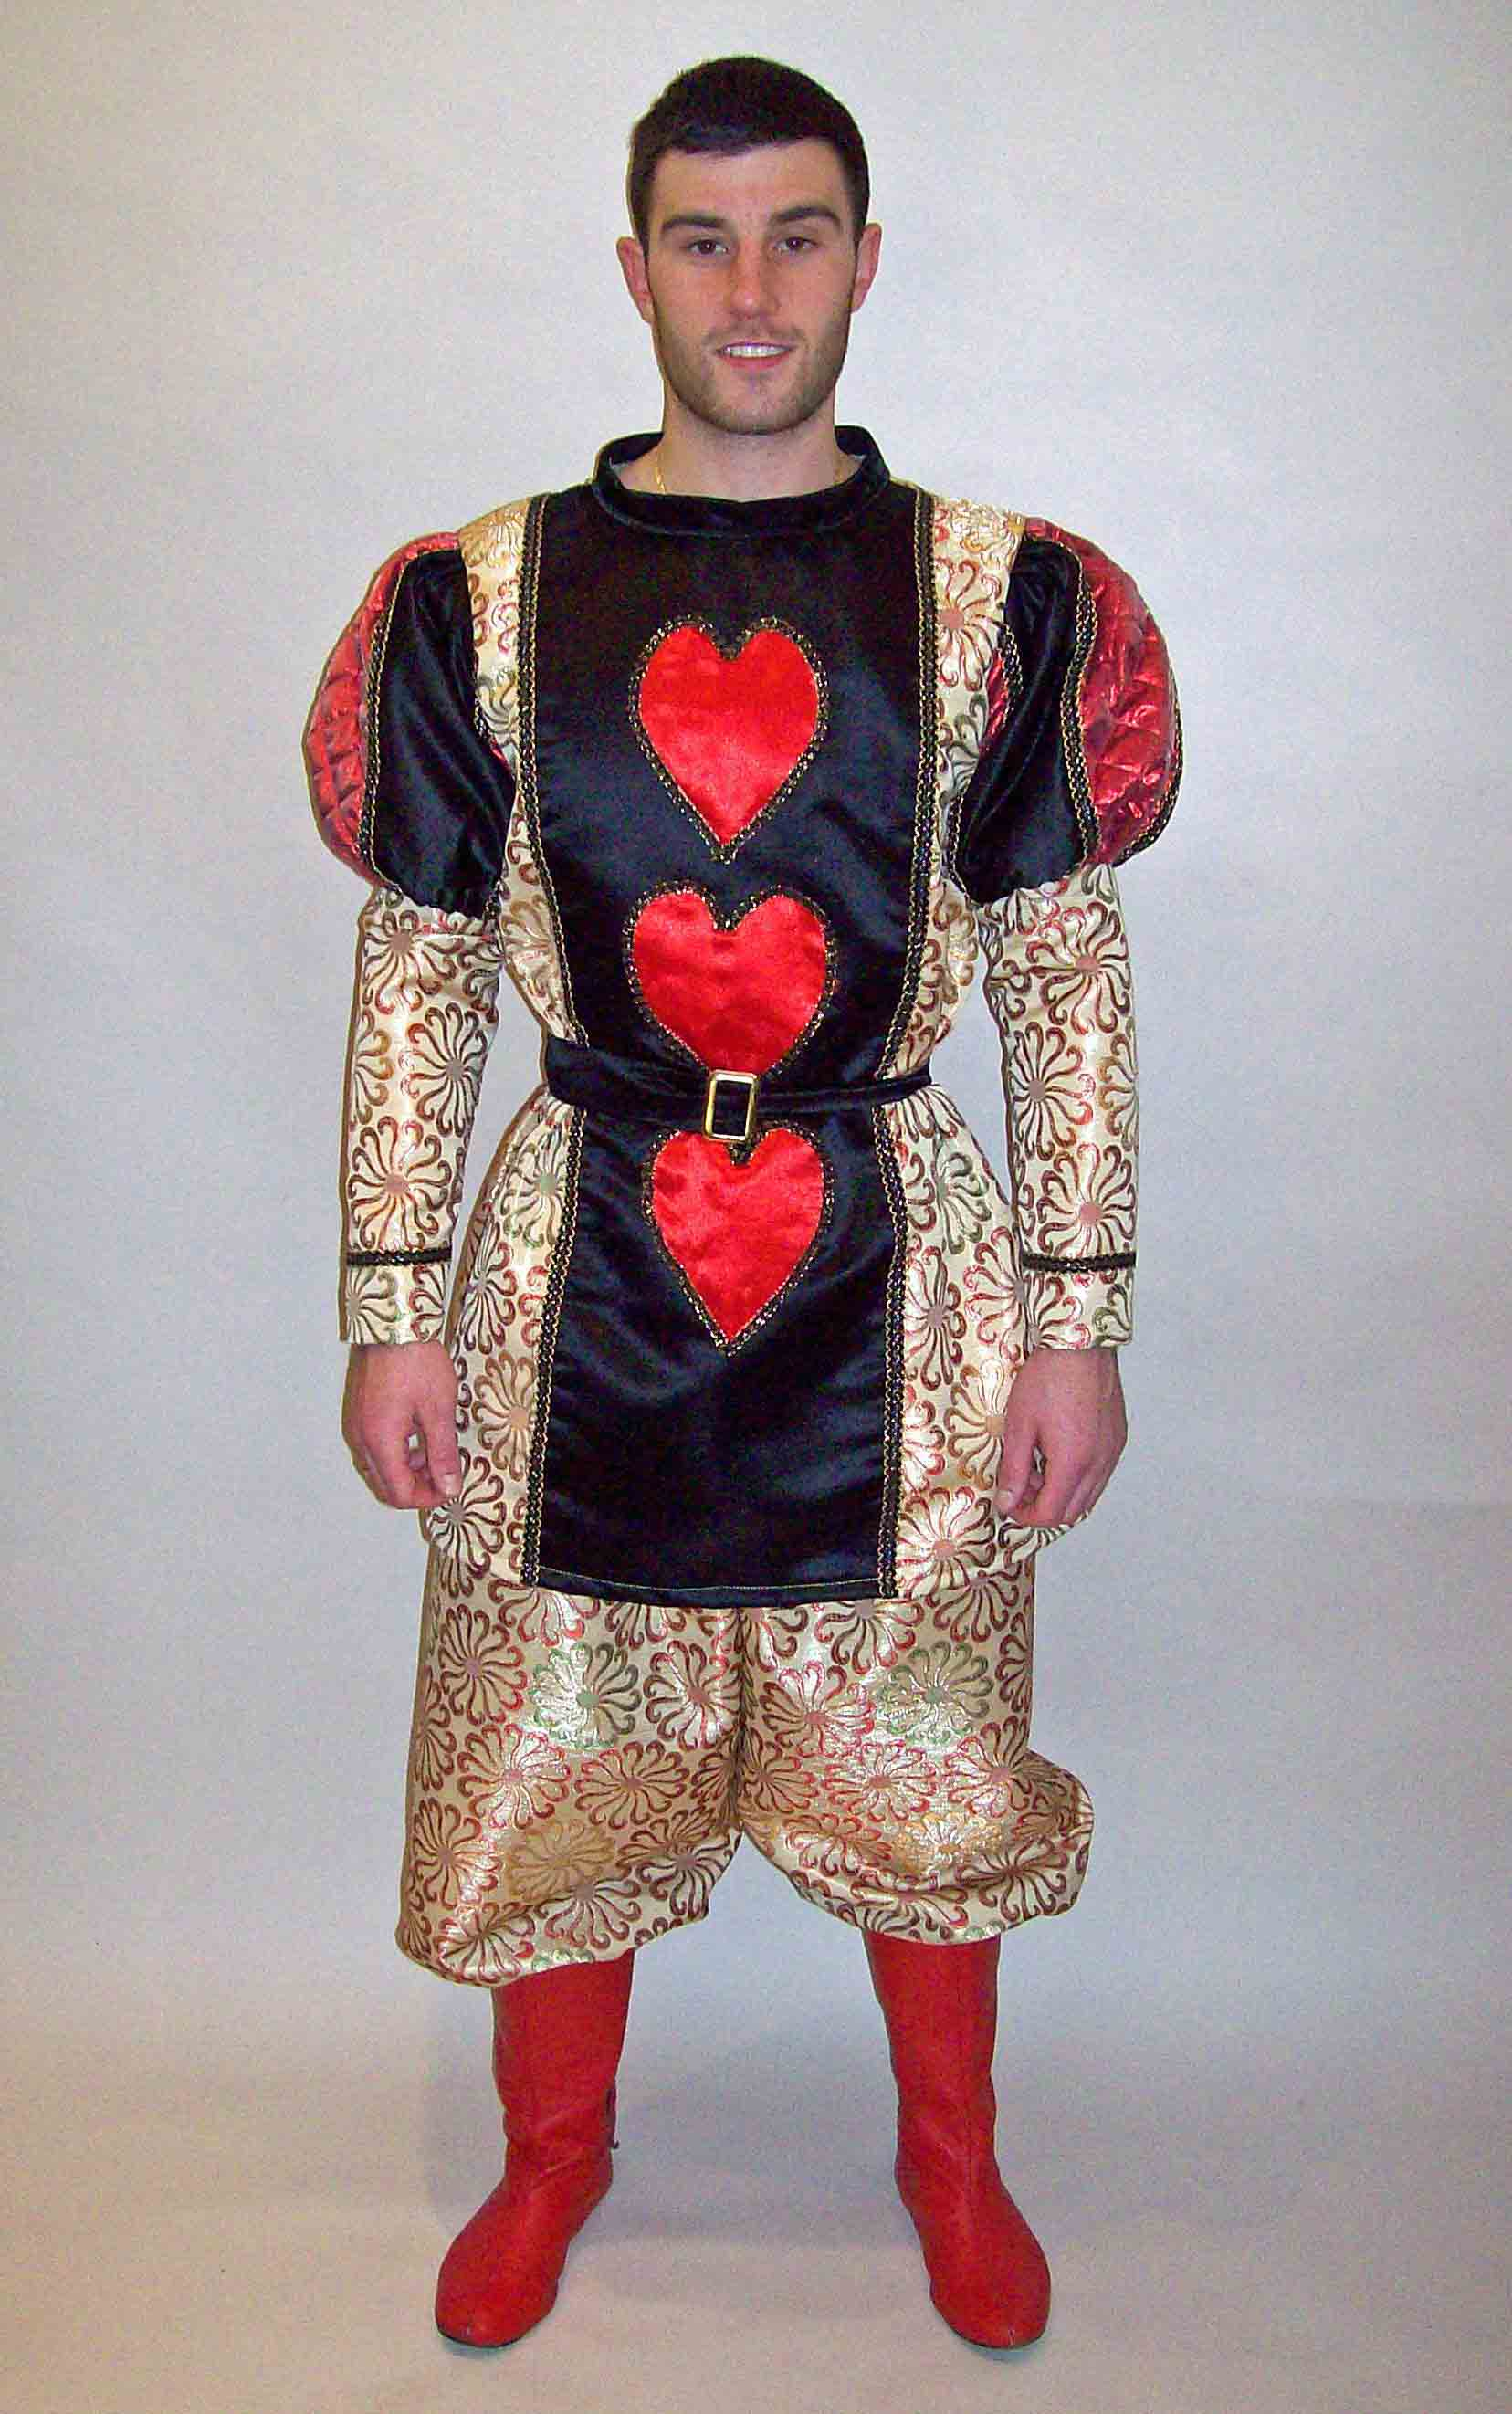 Quality fancy dress costumes for hire, film themed fancy ...